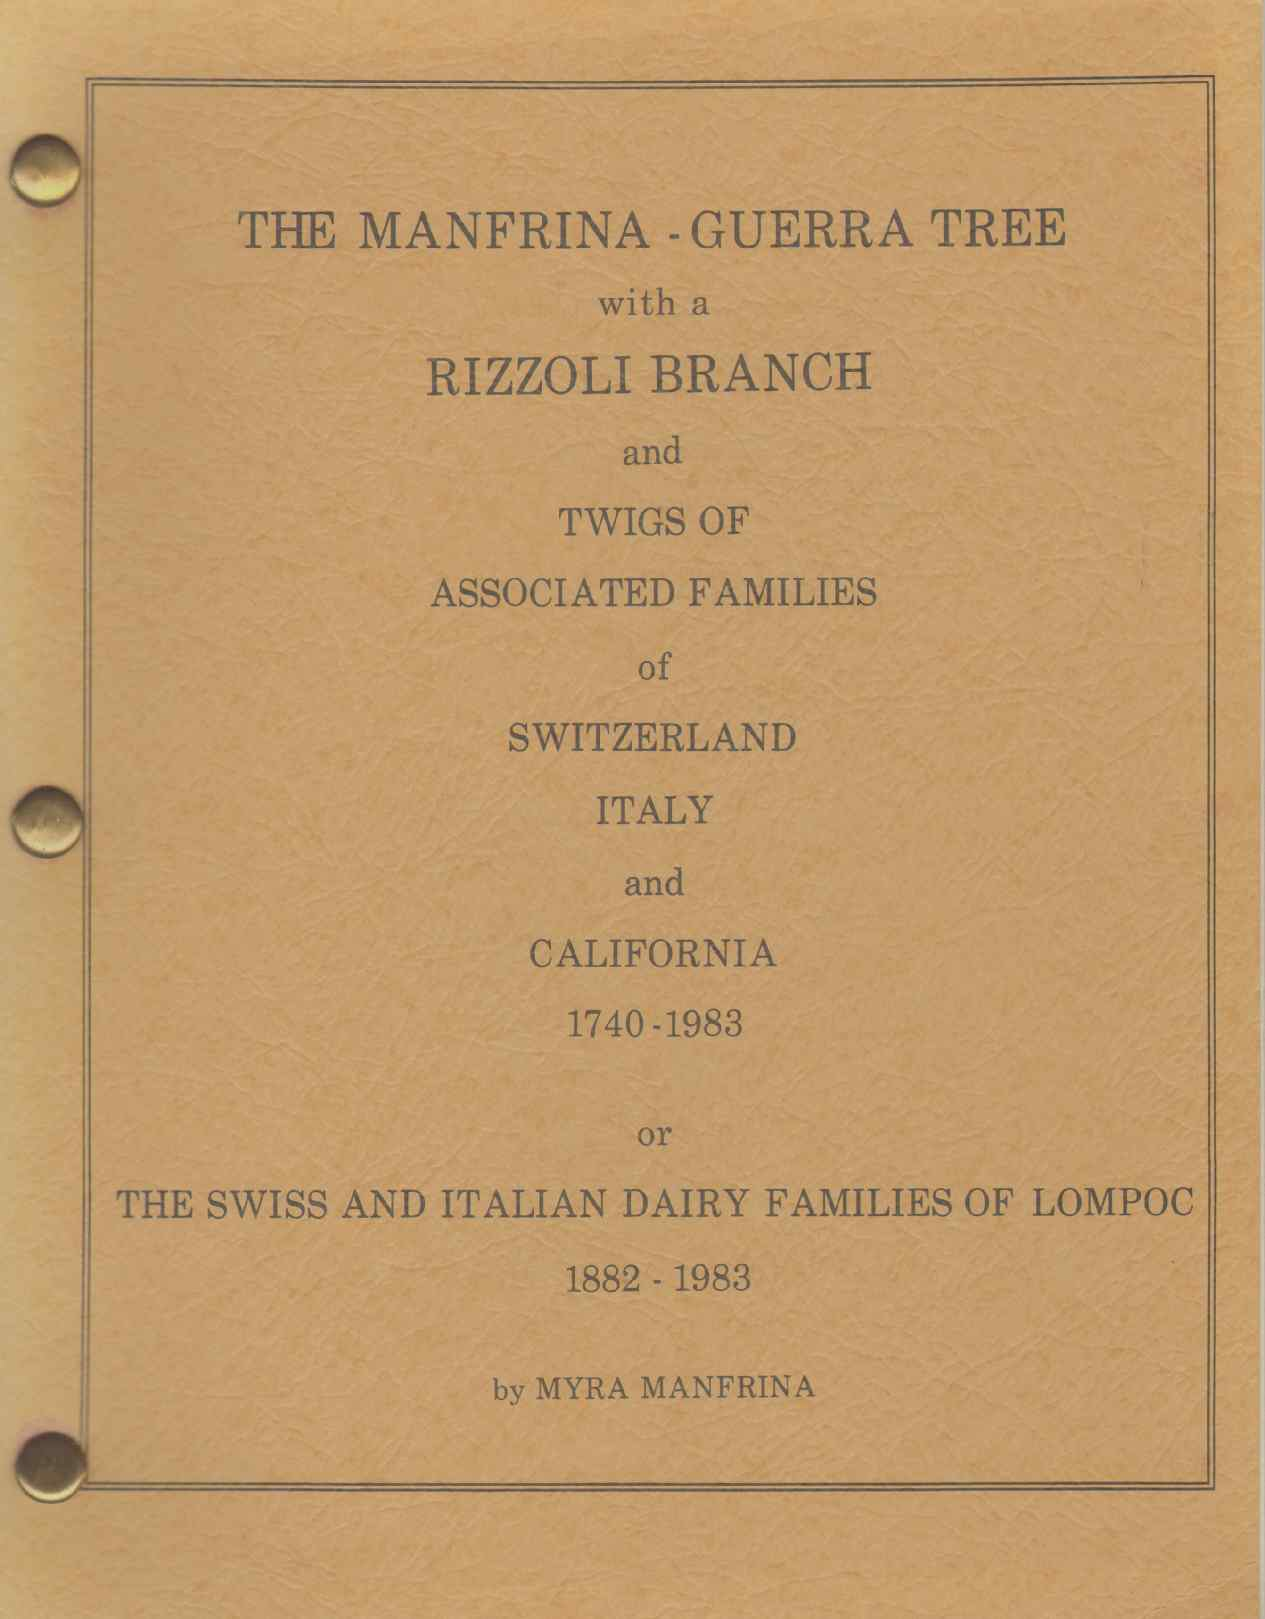 Image for DISCENDENZA DELLA FAMIGLIA MANFRINA, GUERRA, RIZZOLI, GENITORI, FRATELLI, SORELLI, CUGINI E AMICI With 9 Generations of the Guidotti Family of Monte Carasso, Switzerland and California, 1750-1979 Bound As One Volume.